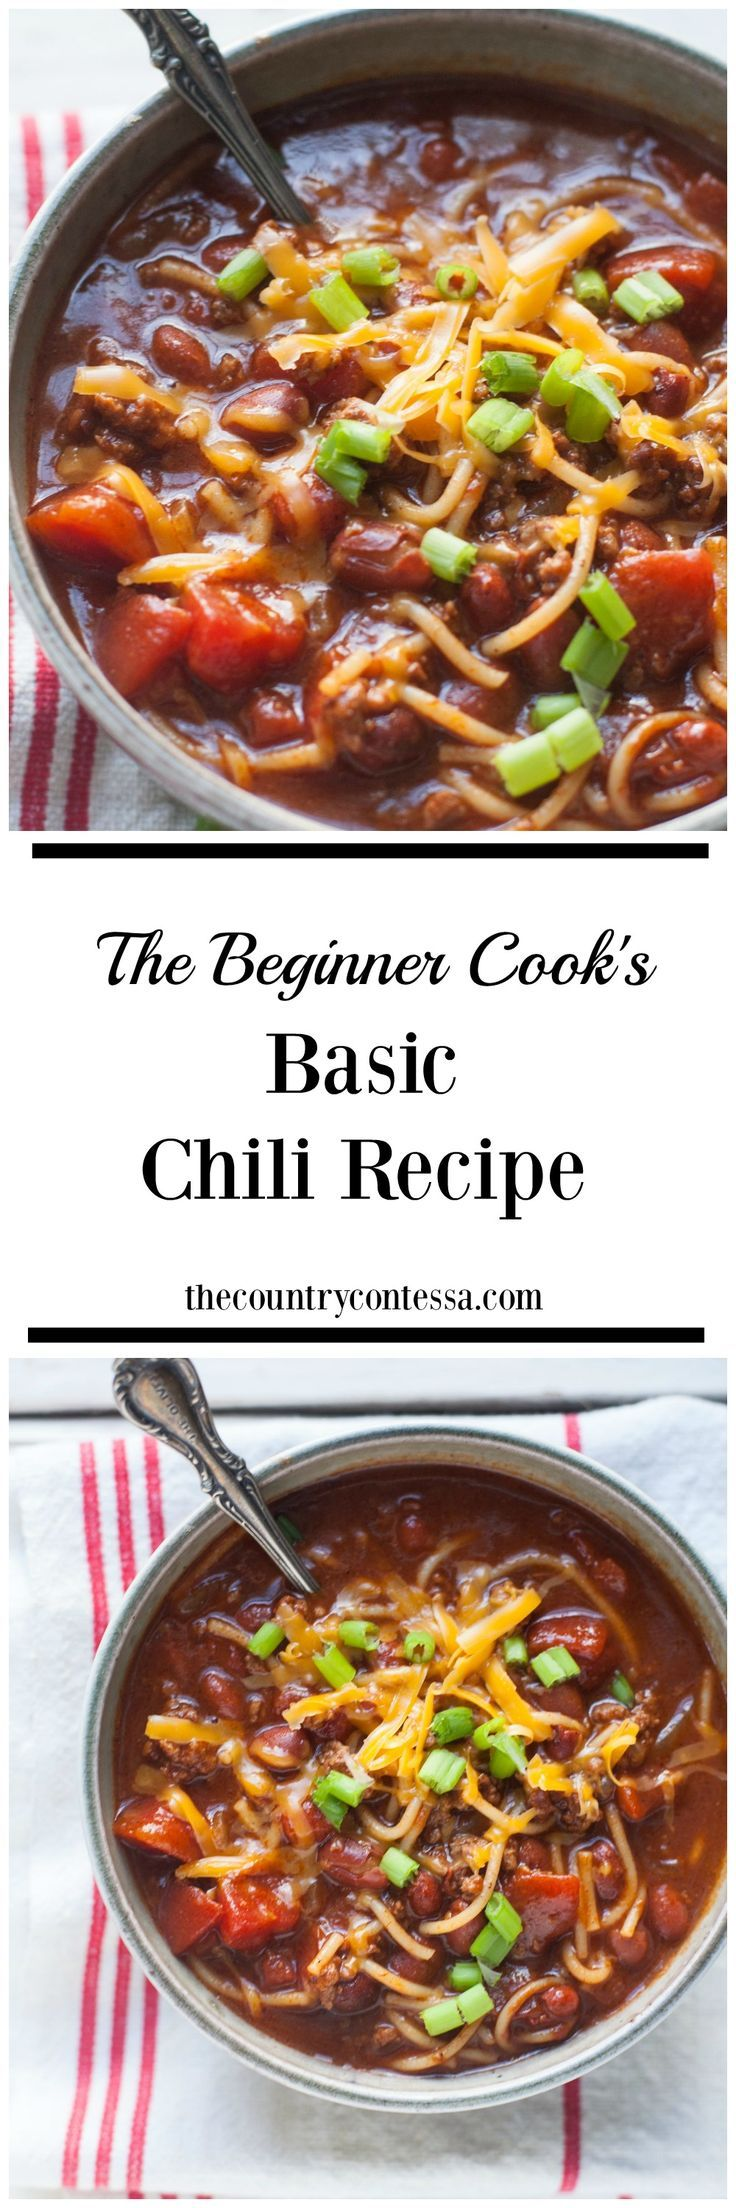 Sometimes you just need a good basic bowl of chili. Not too hot, and not too many fancy ingredients. This easy southern chili recipe is guaranteed to deliver it all.  via /contessa_cooks/